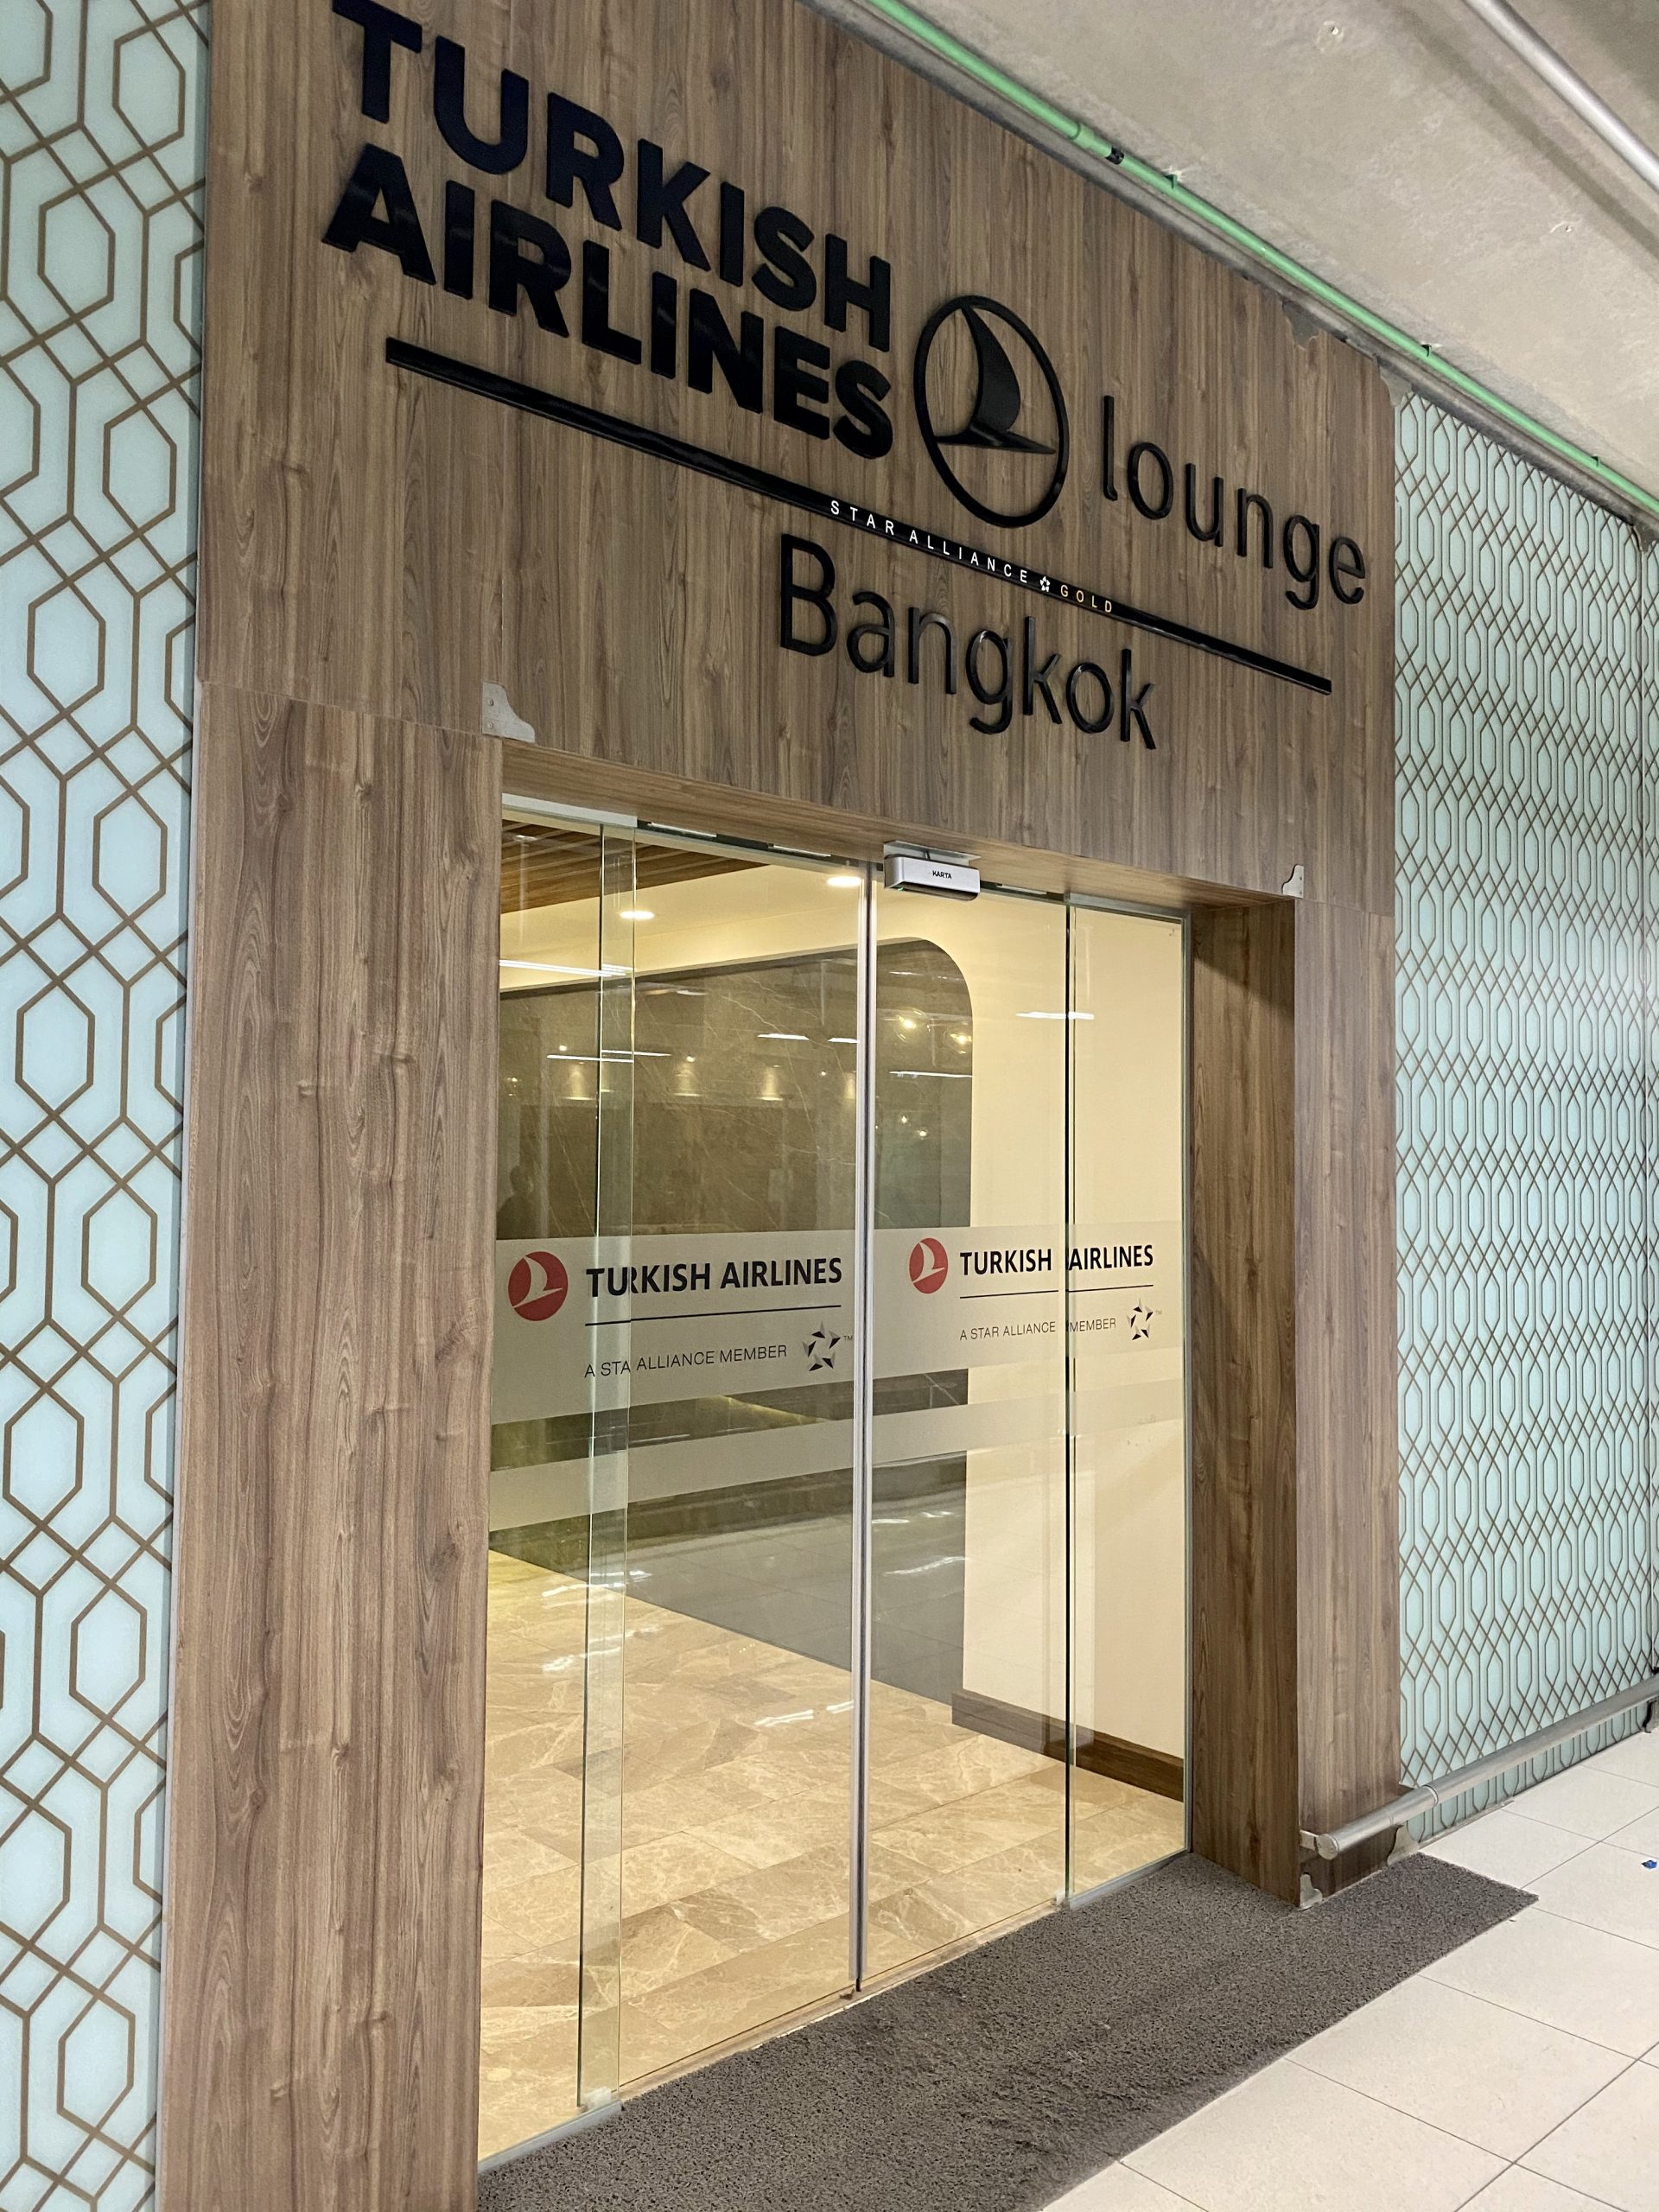 Turkish Airlines Lounge Bangkok